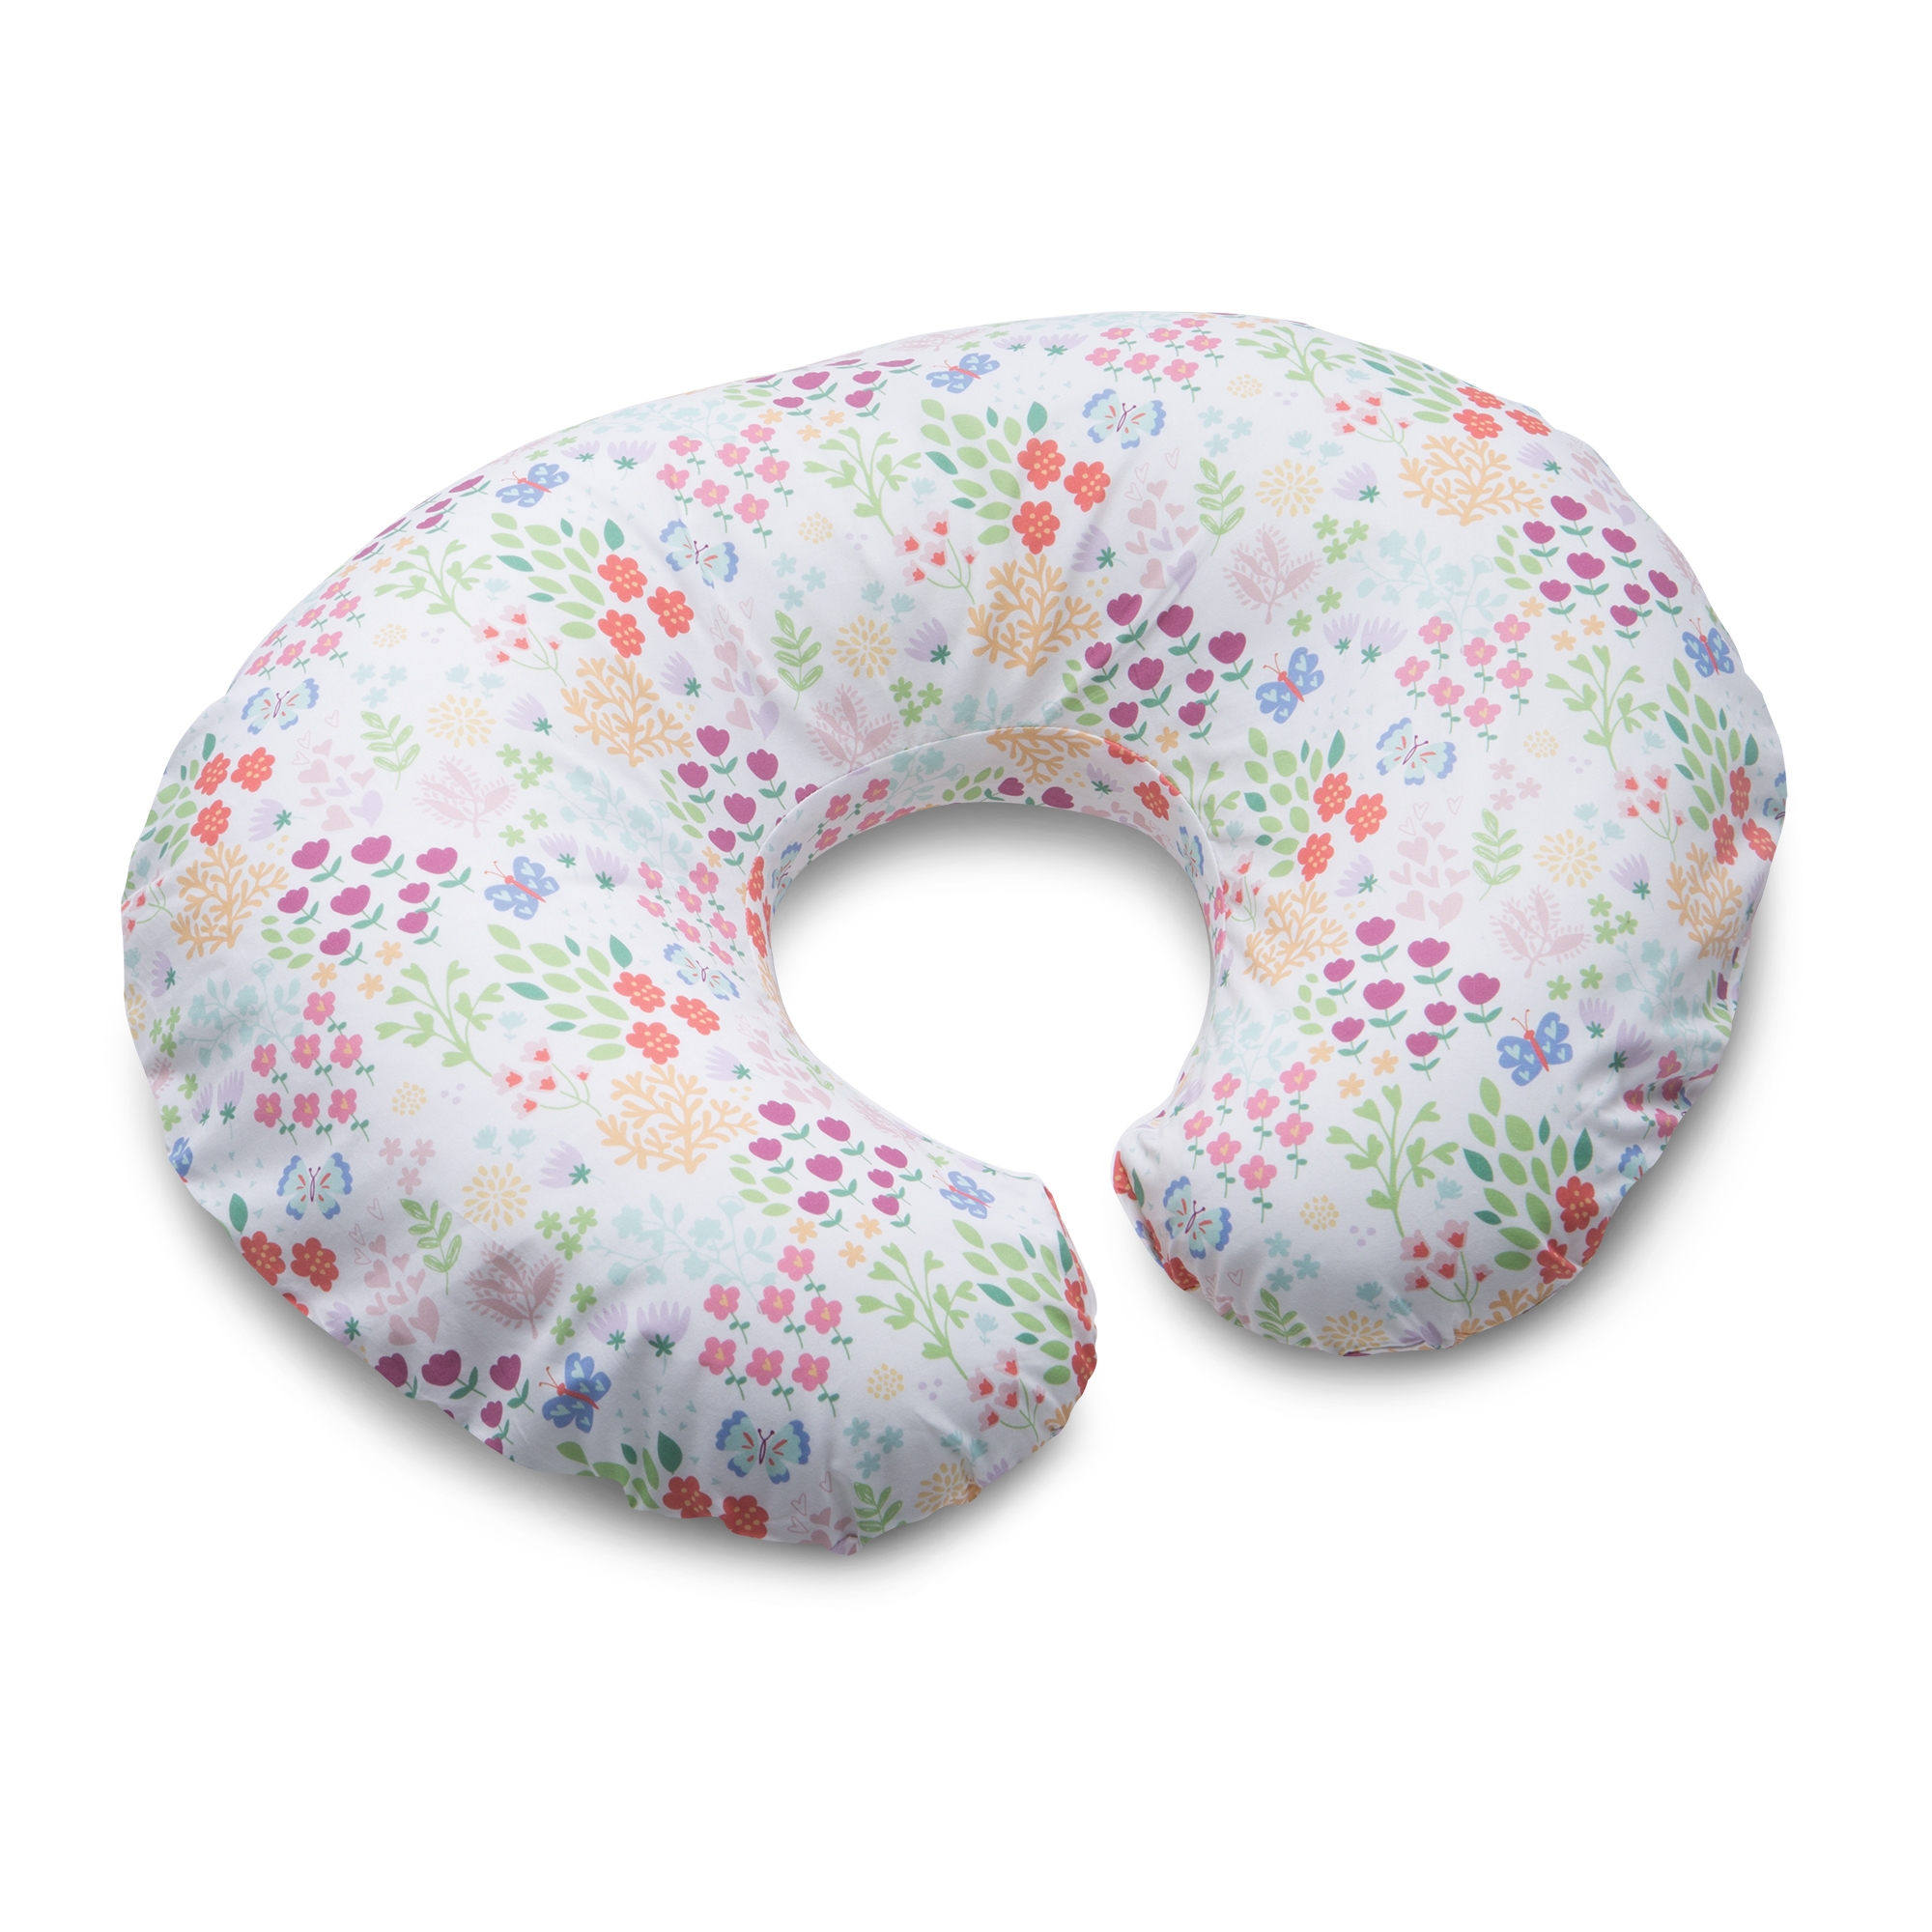 Original Boppy Nursing Pillow and Positioner Garden Party